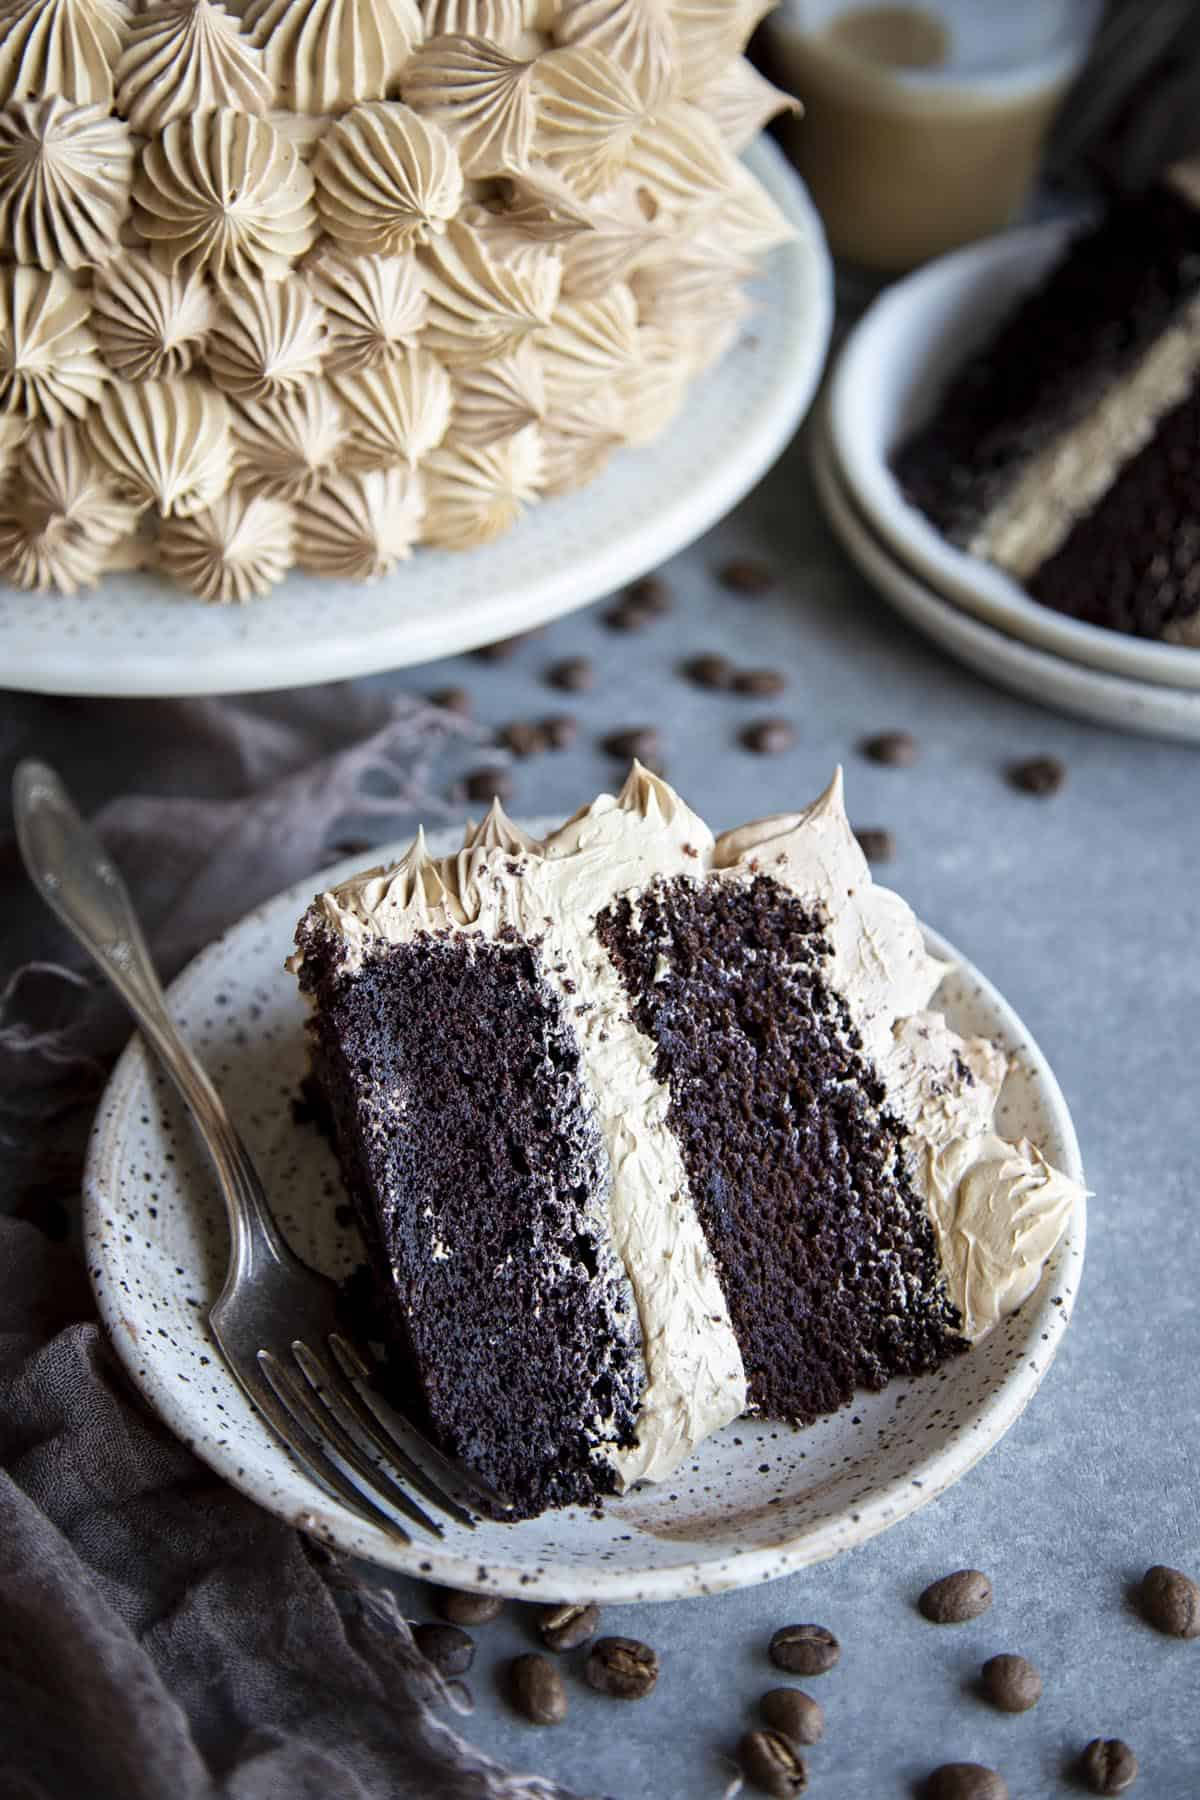 A slice of mocha cake on a plate